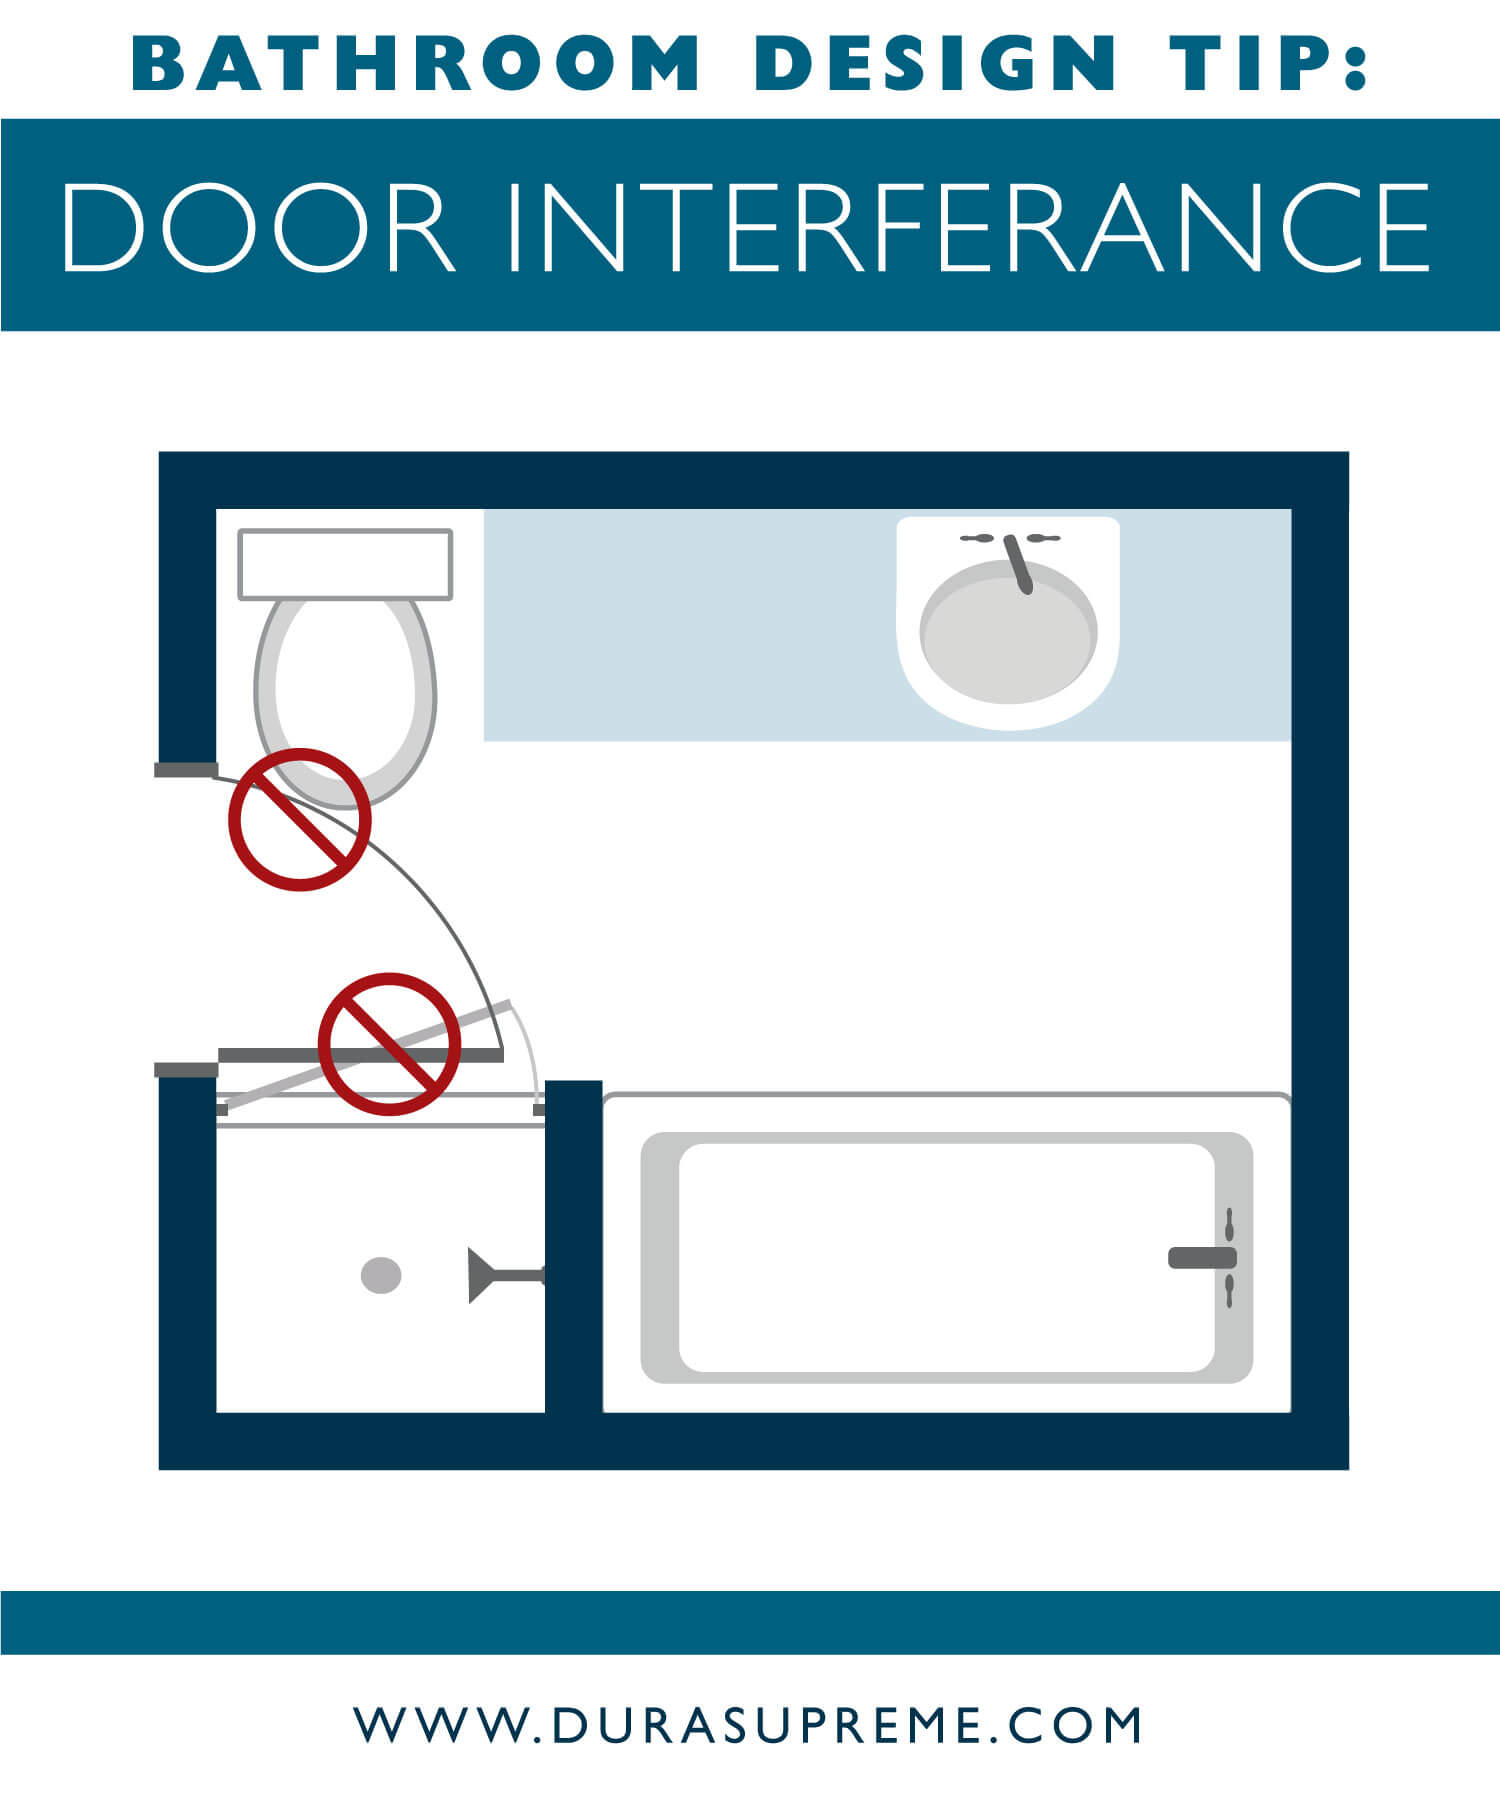 Bathroom design tip - How to Avoid Door Interferance - Best Bathroom Design Guidelines